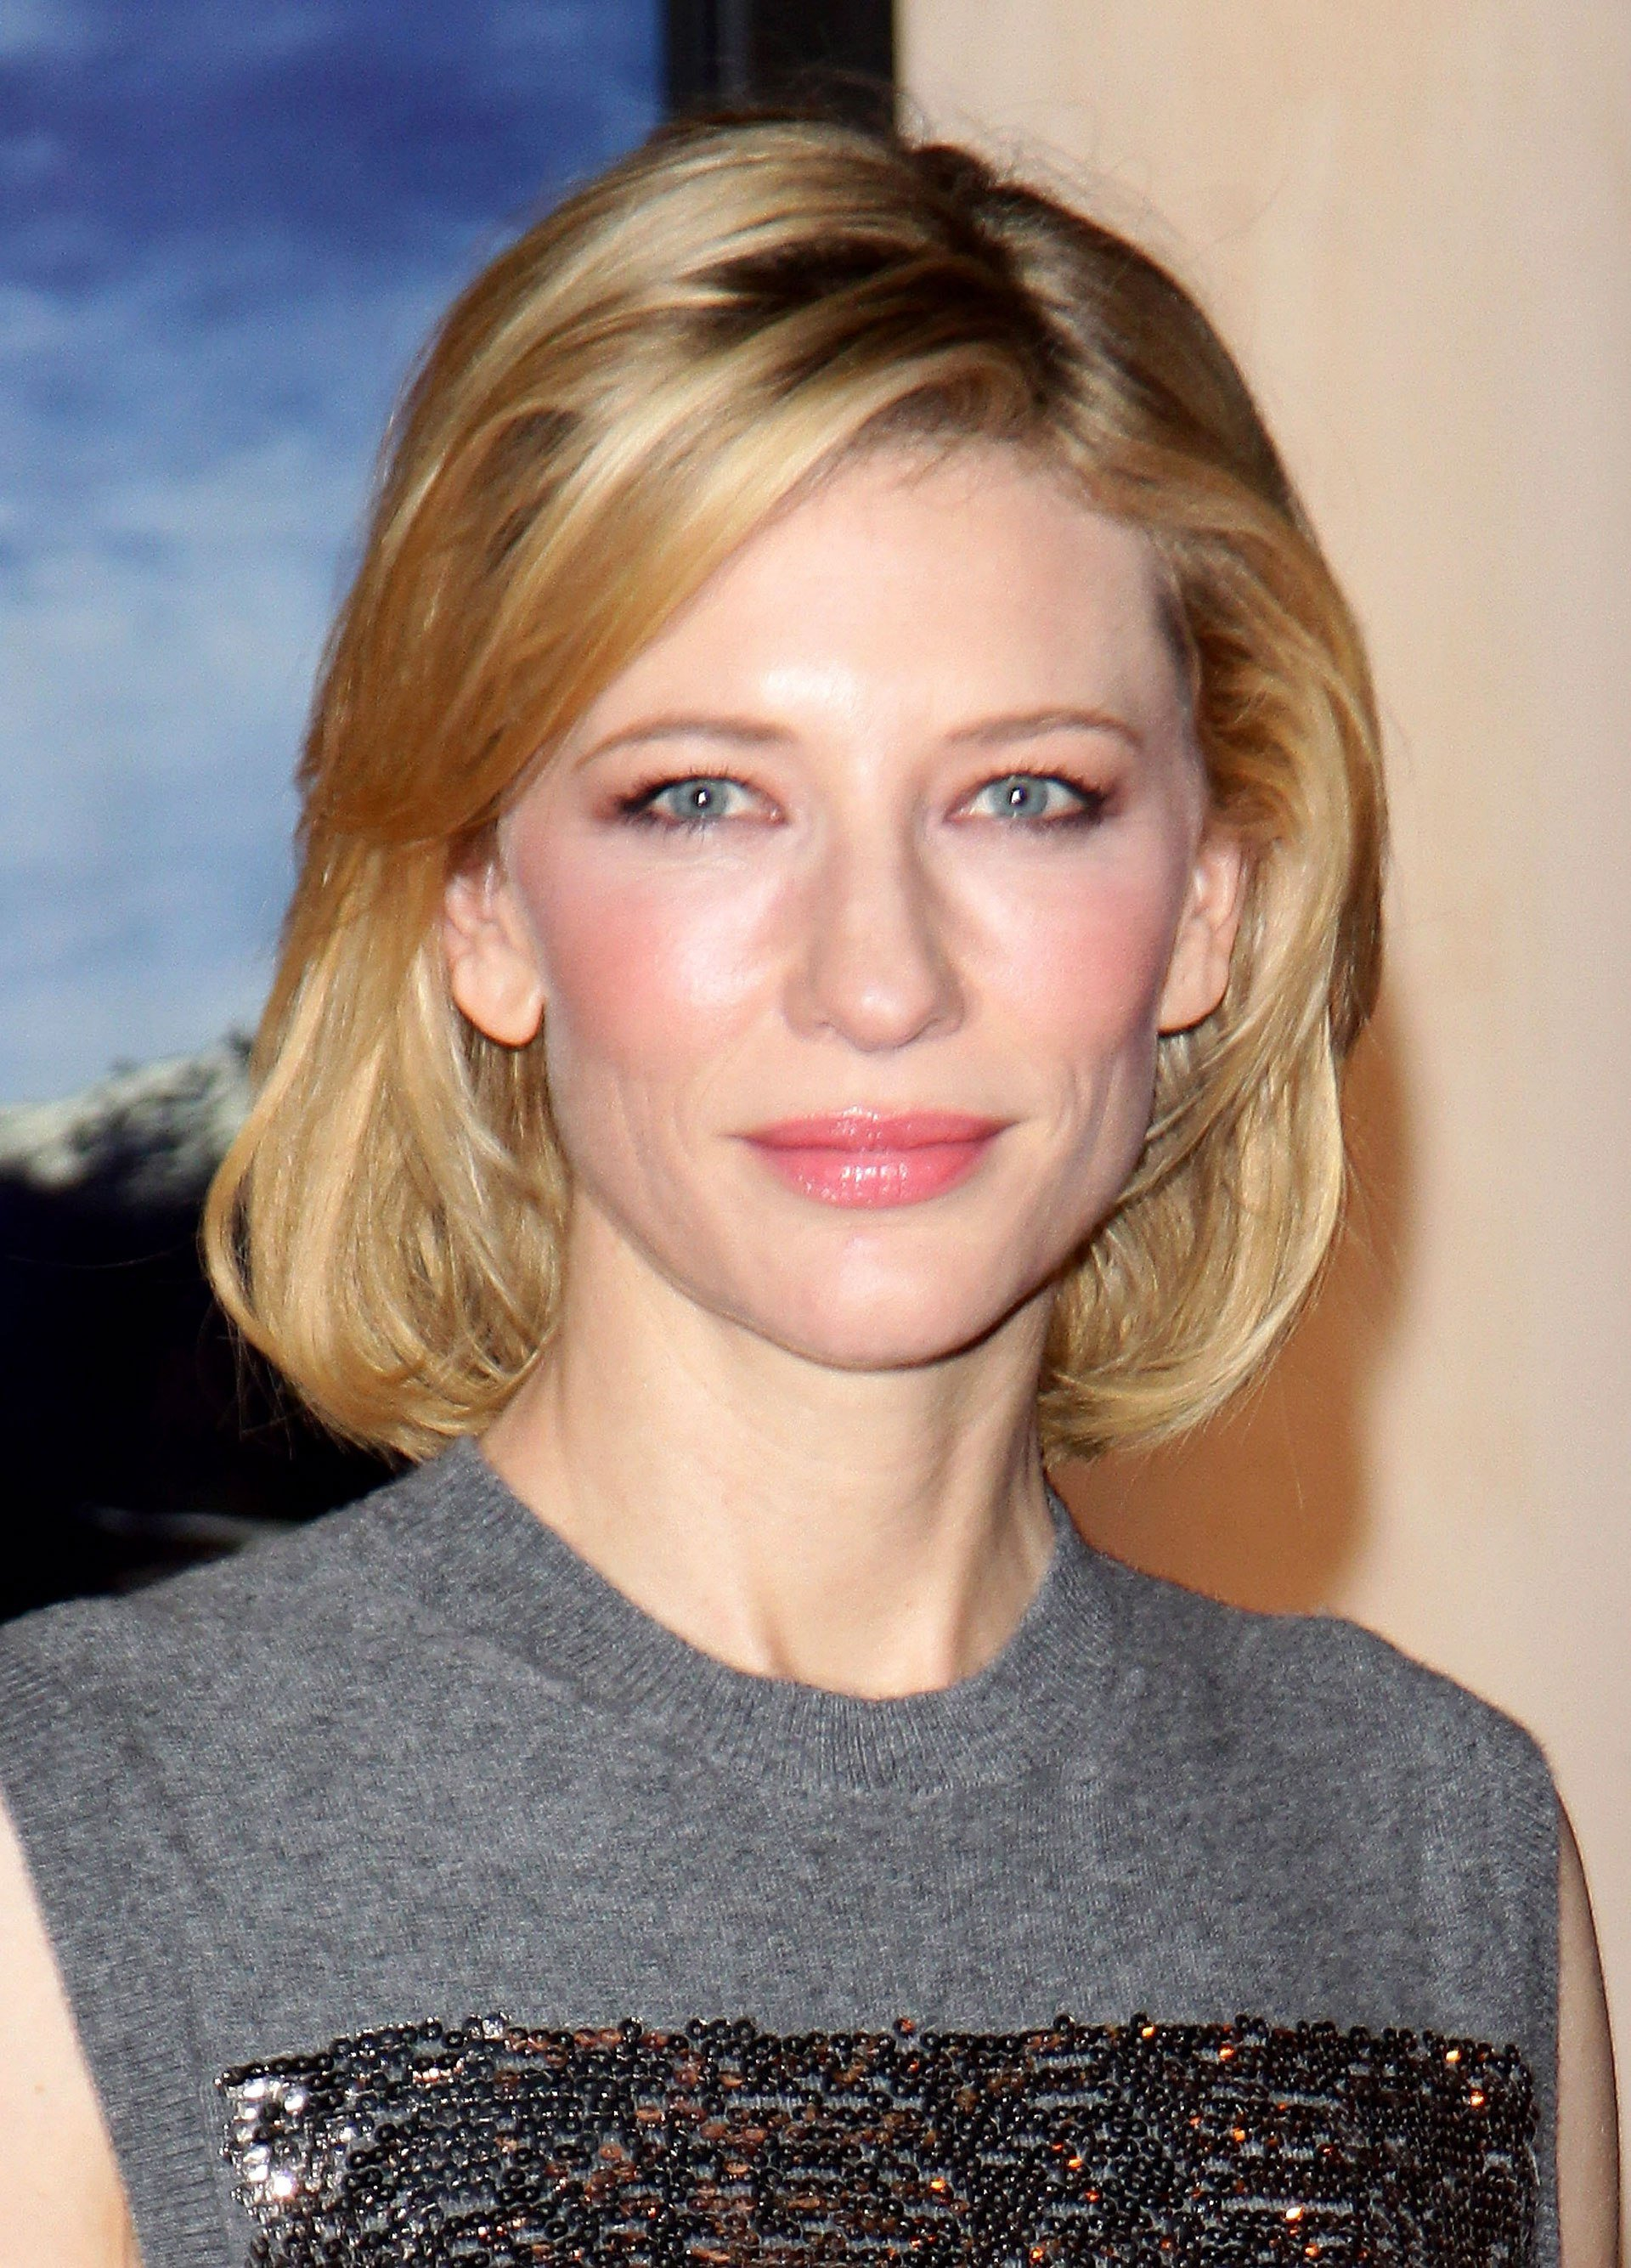 The Best 12 Best Hairstyles For Women Over 40 Celeb Haircut Ideas Pictures